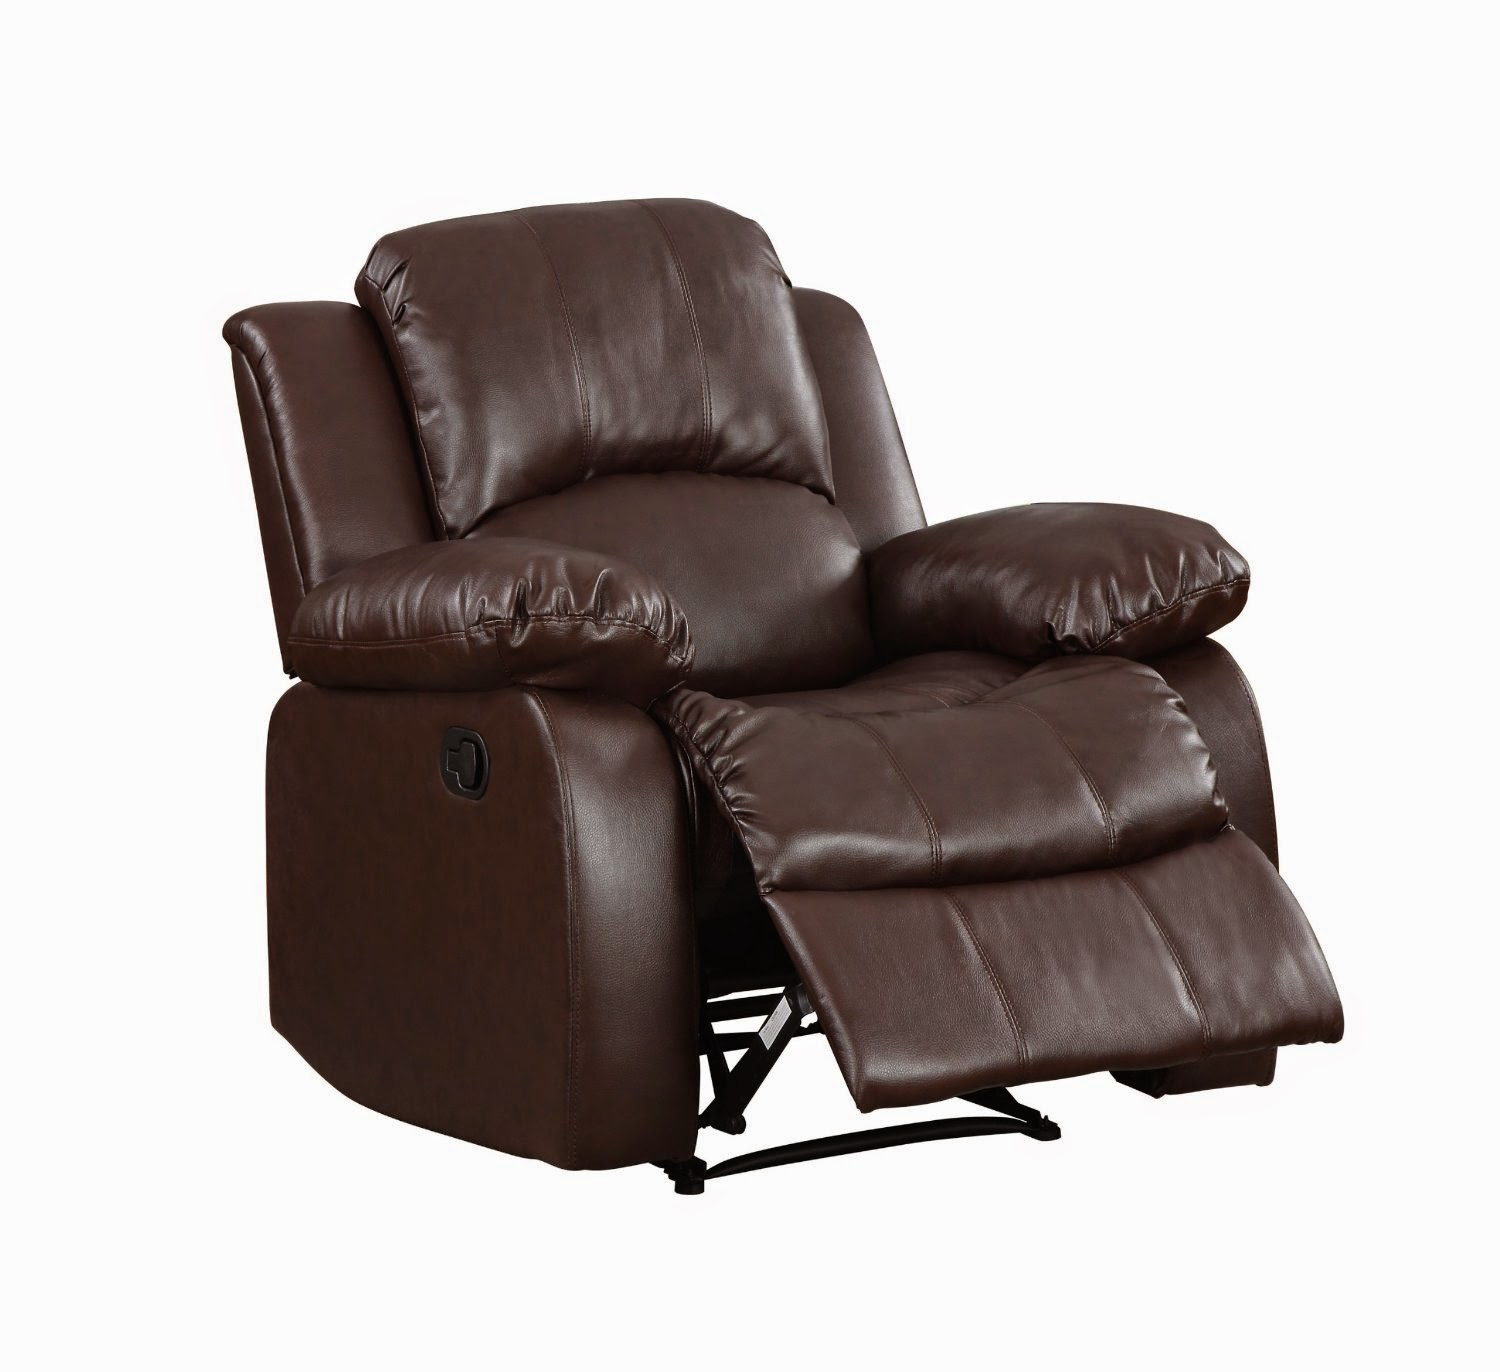 recliner sofa set 3 2 1 mexico futon bed with mattress review best leather reclining brands reviews costco